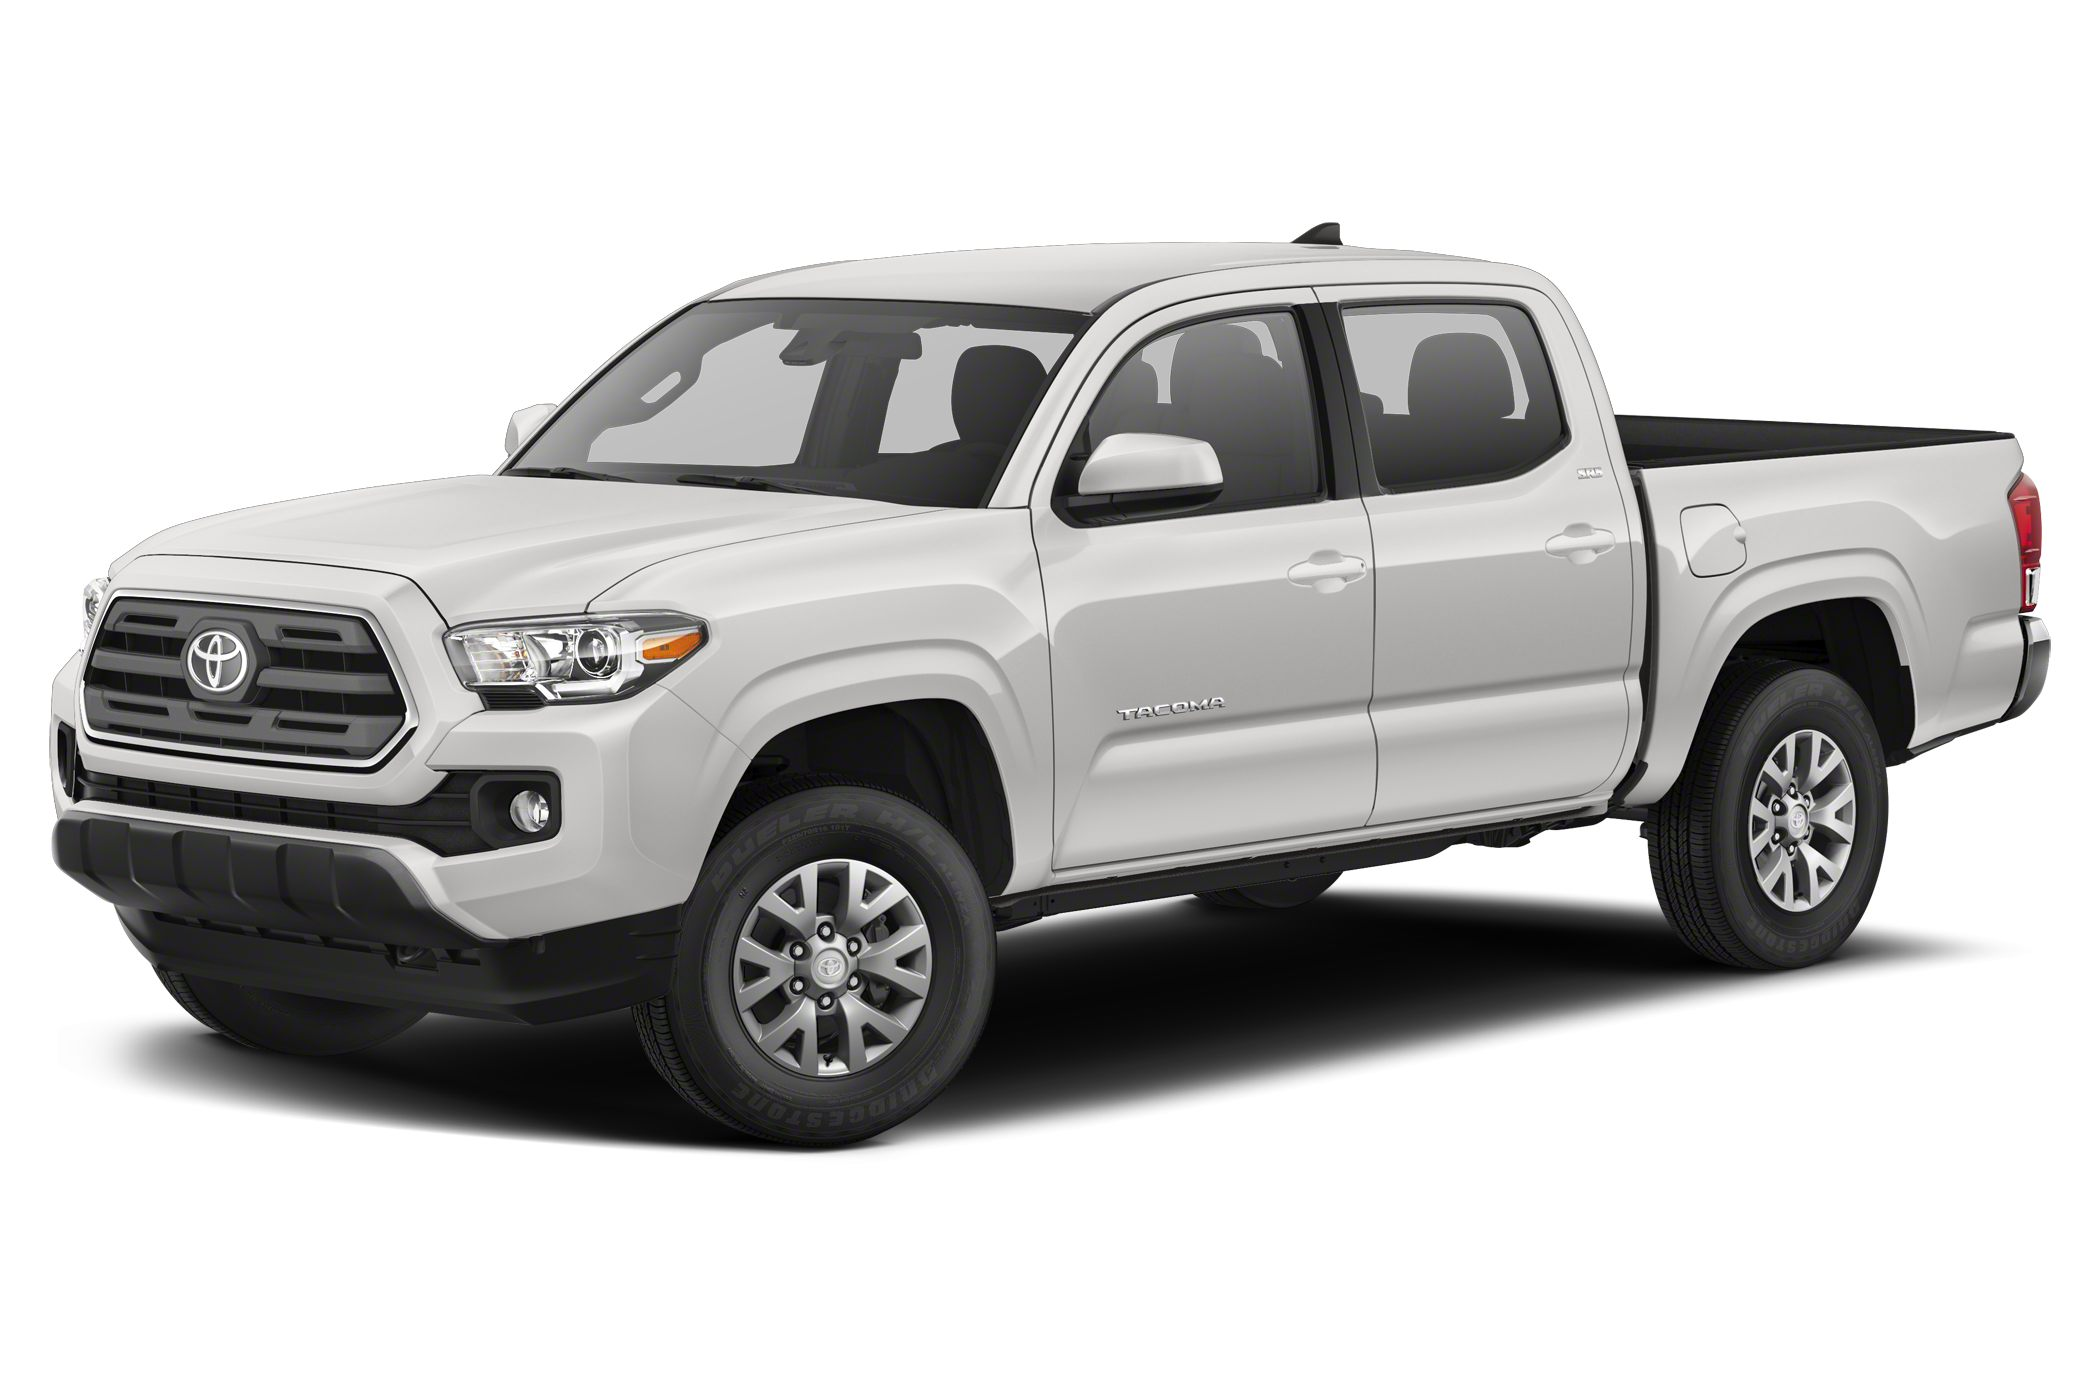 Toyota Tacoma V6 Towing Capacity >> 2018 Toyota Tacoma Sr5 V6 4x2 Double Cab 140 6 In Wb Specs And Prices